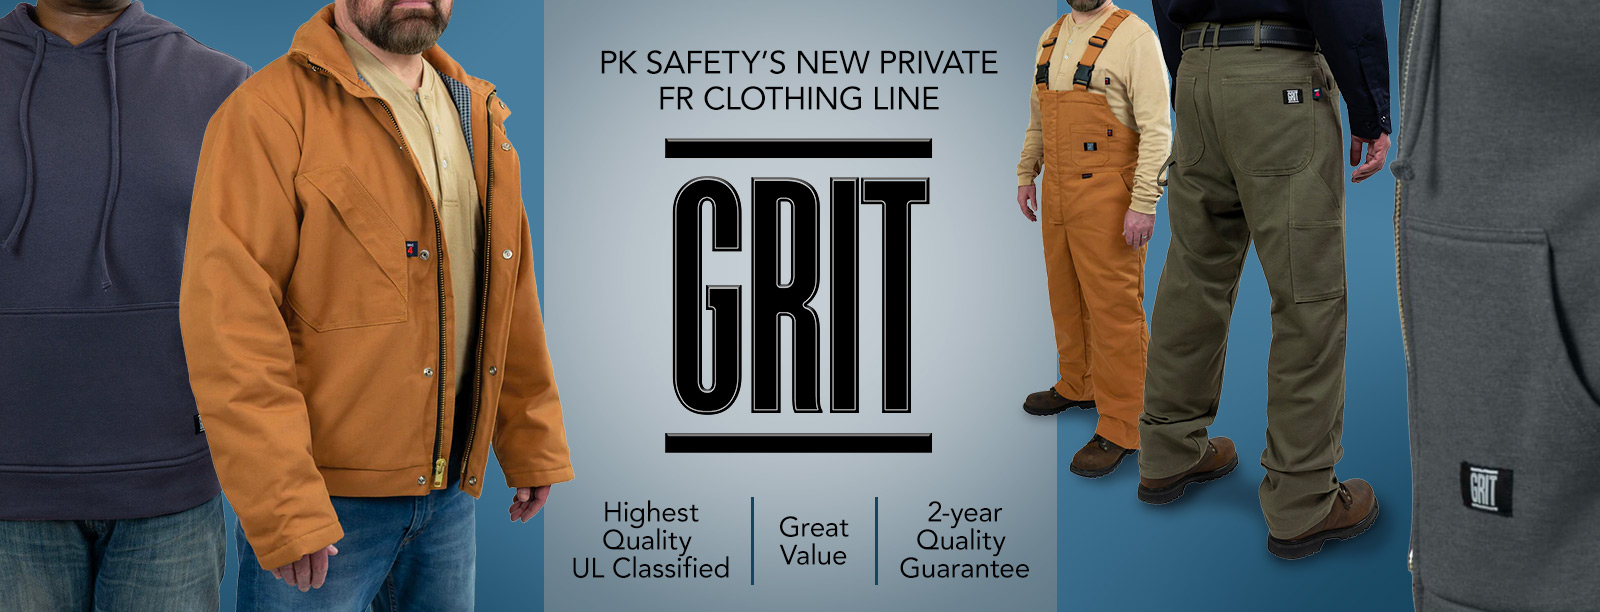 pksafety-hero-190222-grit-fr.jpg